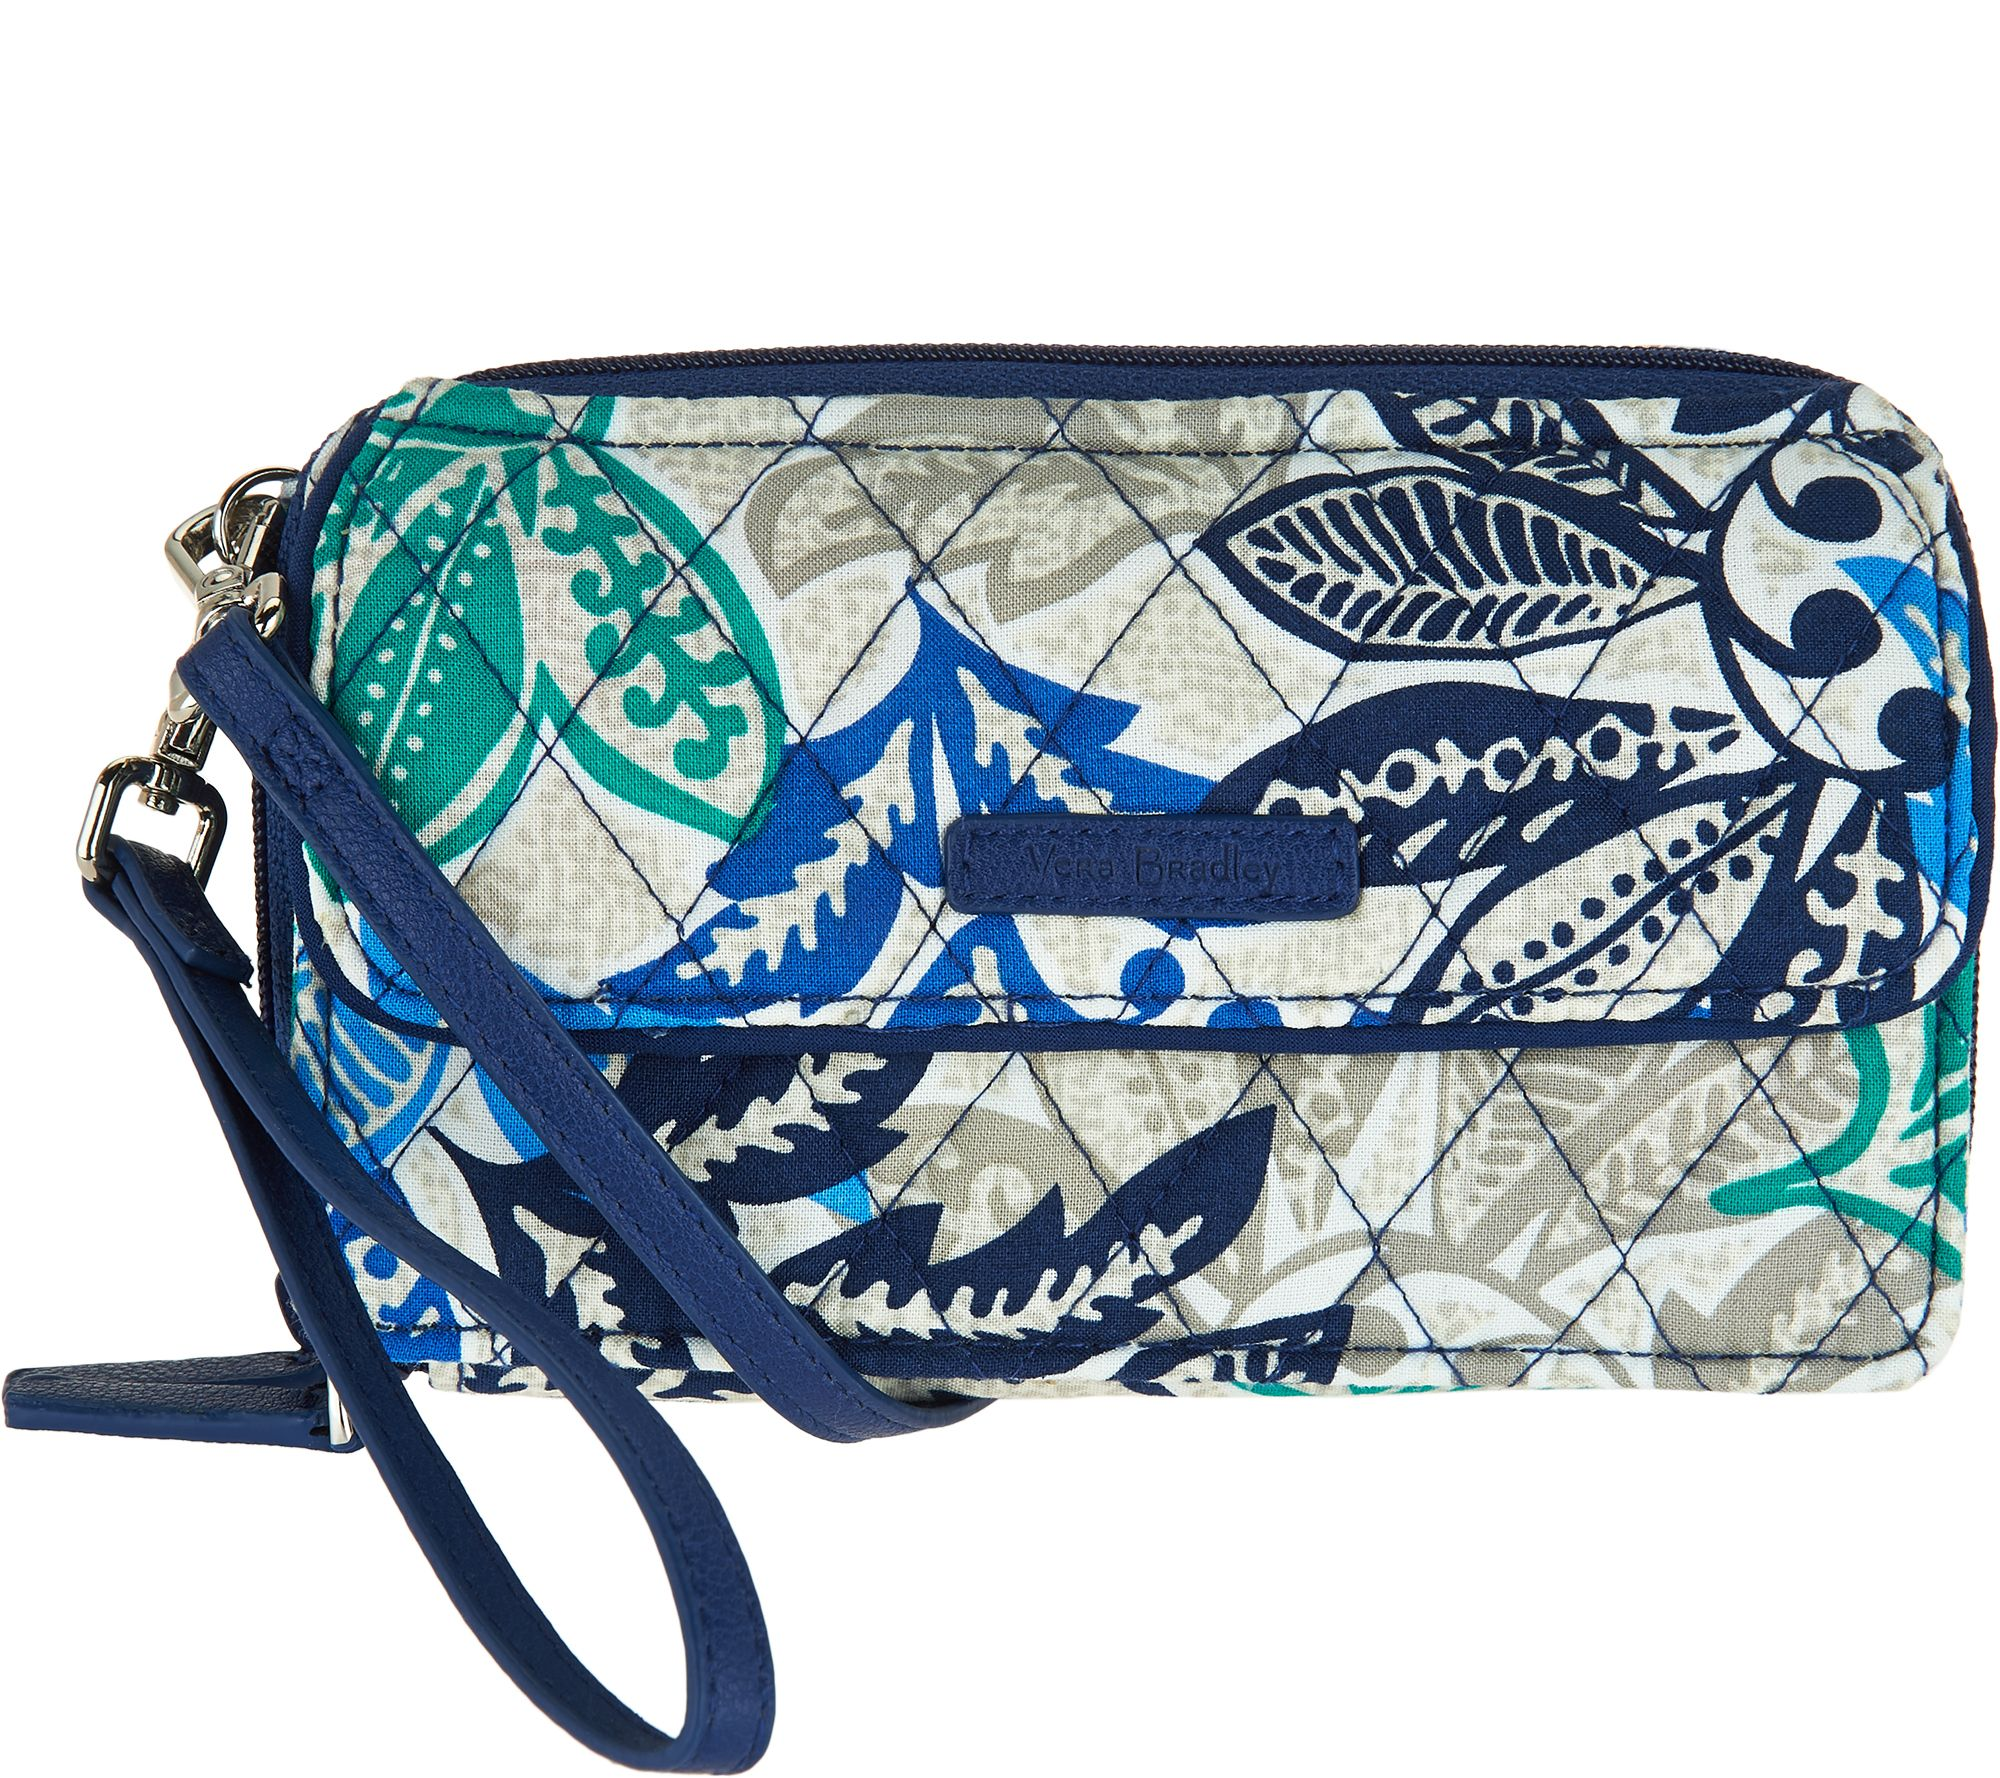 cad10aa5578 Vera Bradley Signature Print All in One RFID Crossbody - Page 1 — QVC.com